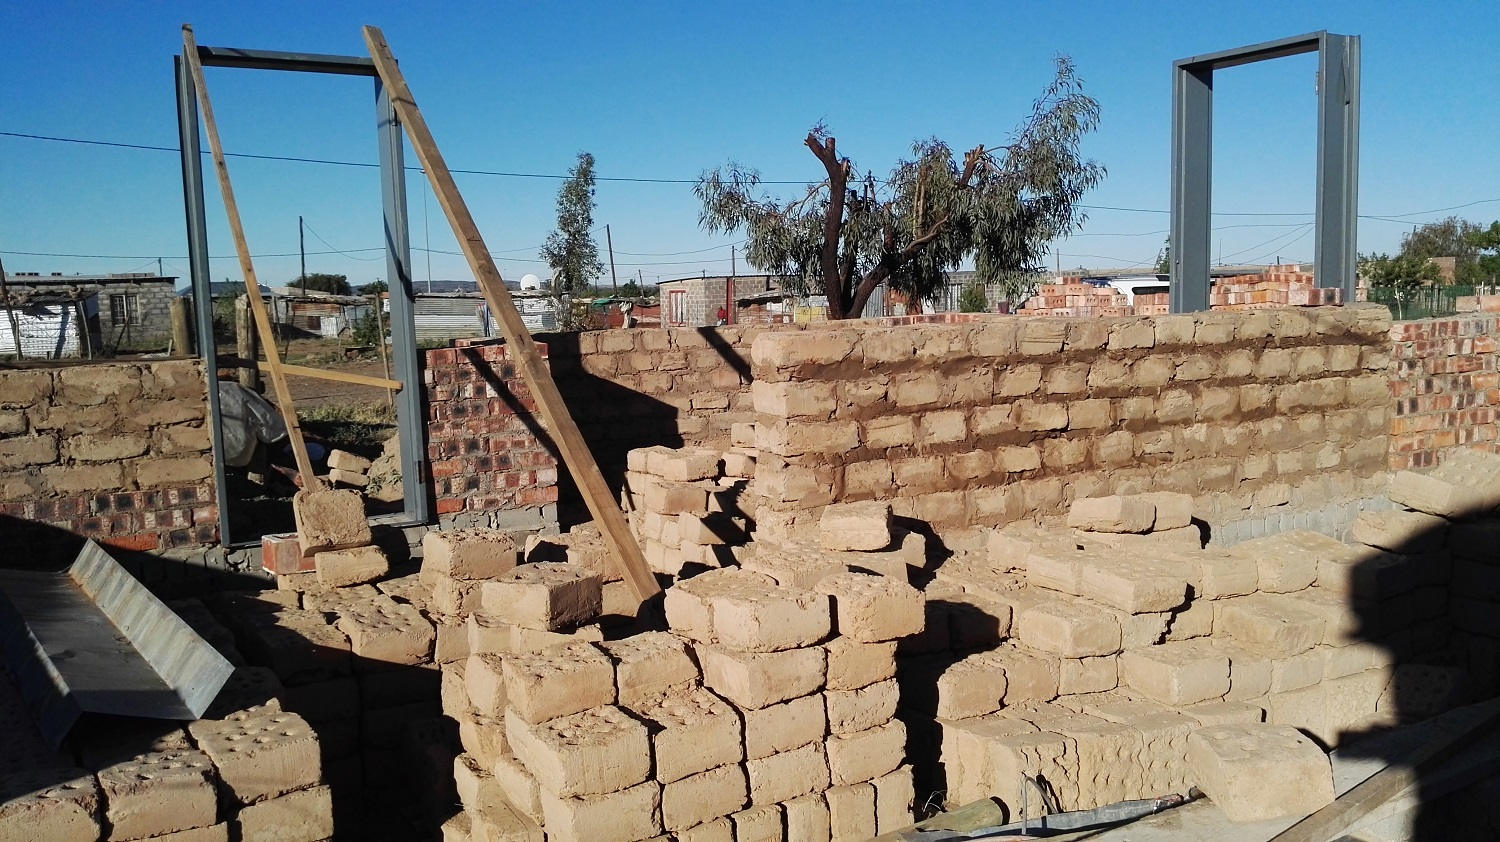 In 2018 the builders decided to use a combination of clay bricks and earth bricks as major construction material.